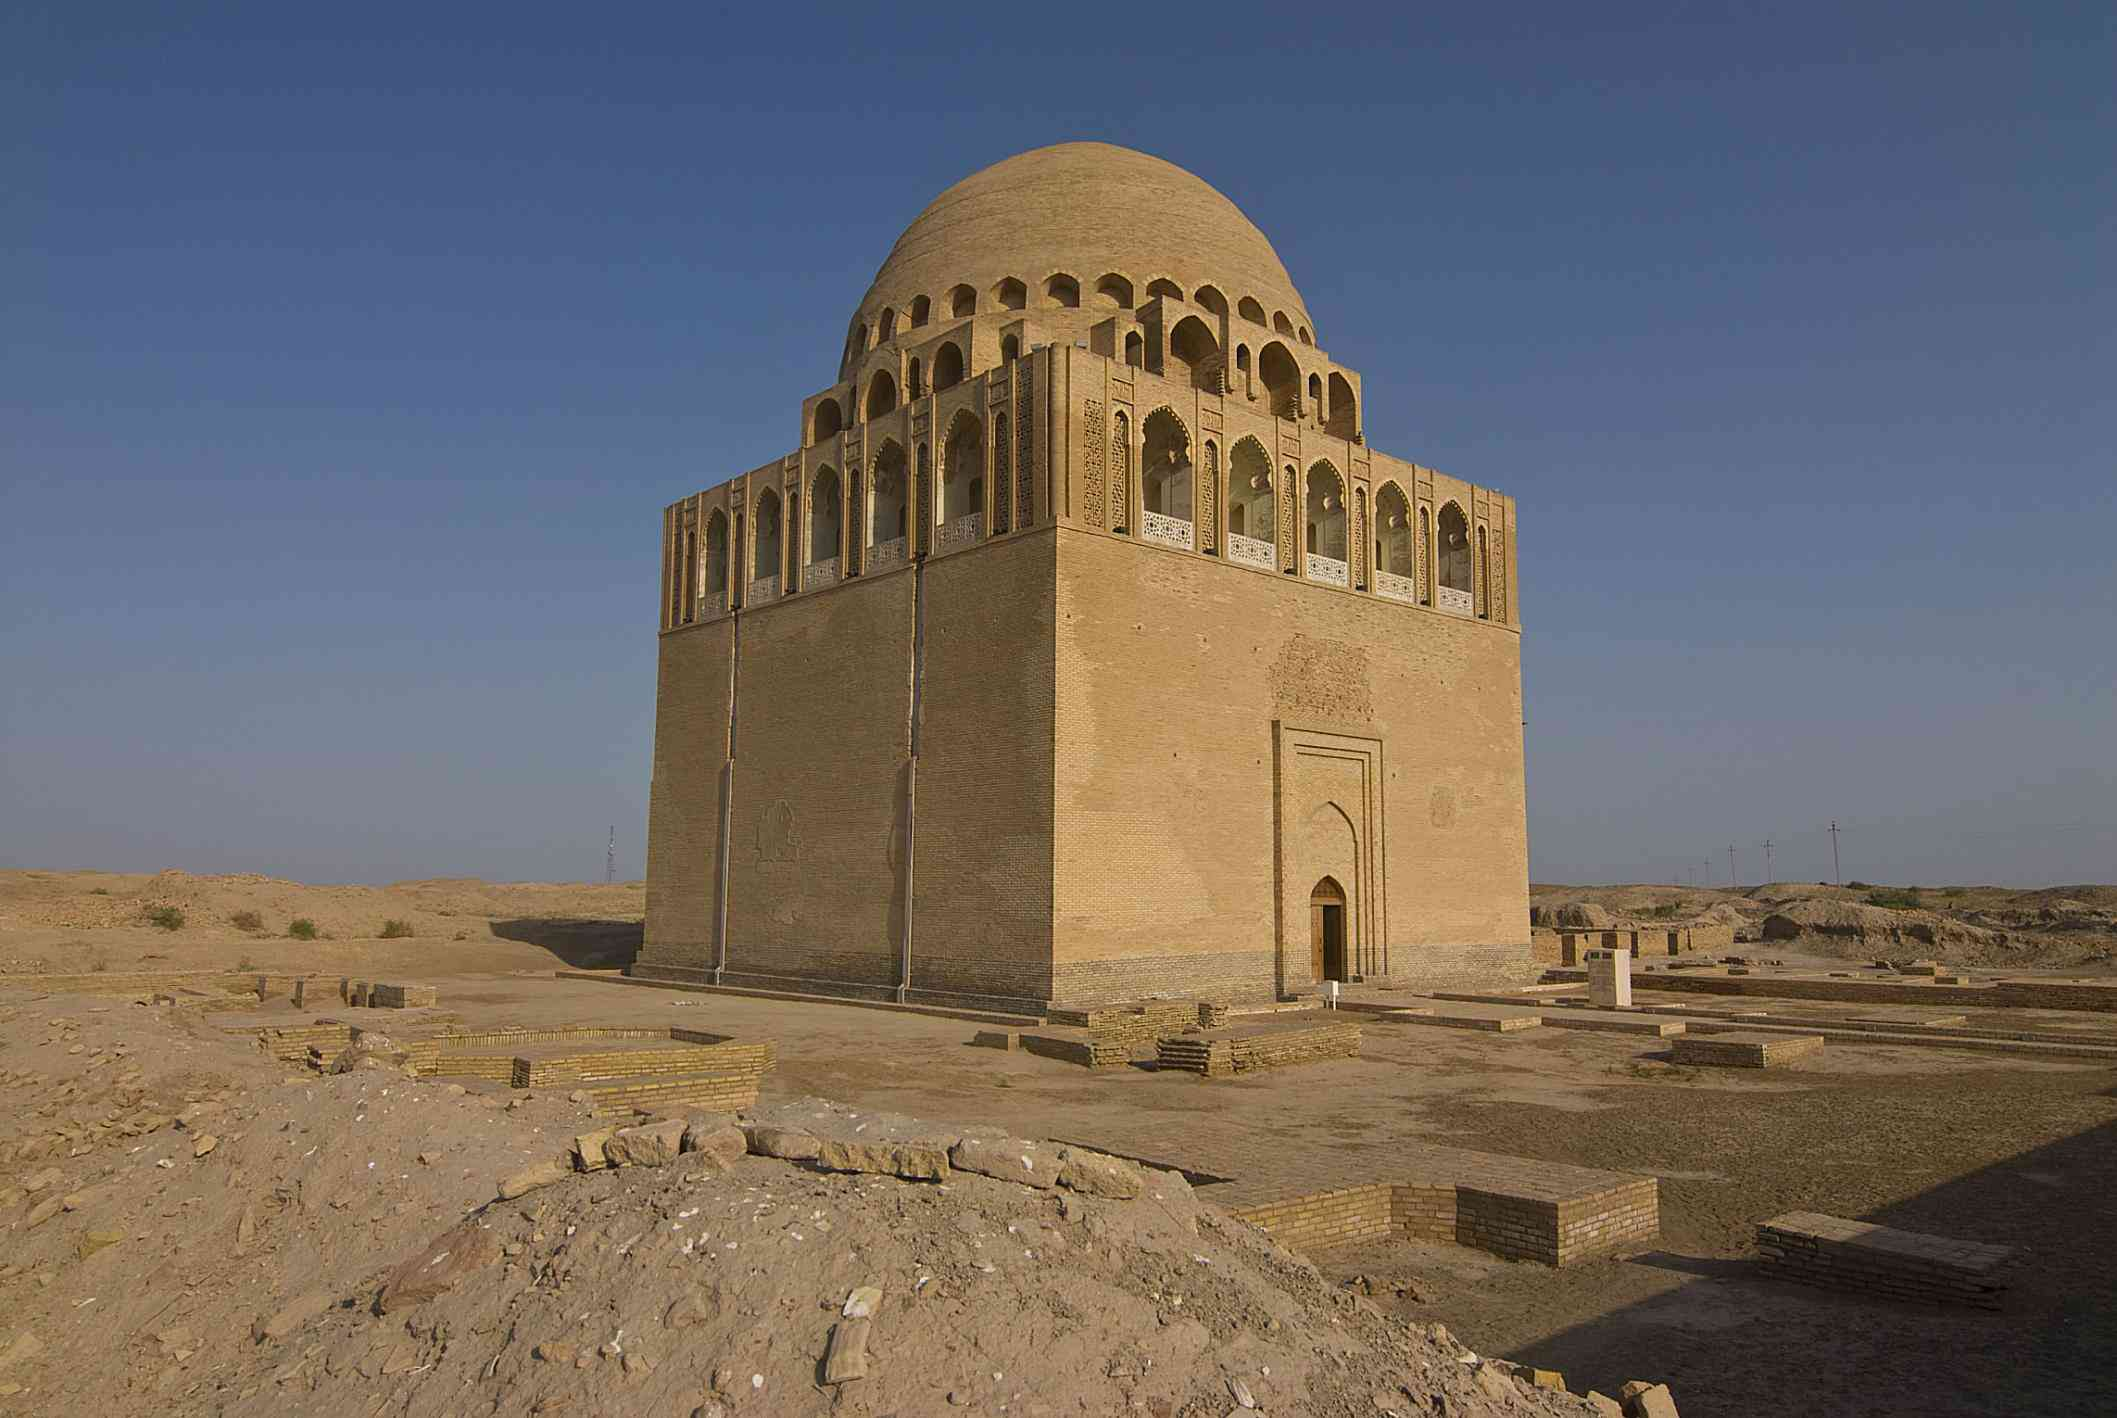 The dome-topped tomb of the Seljuk sultan Sanjar in modern day Turkmenistan on a clear afternoon